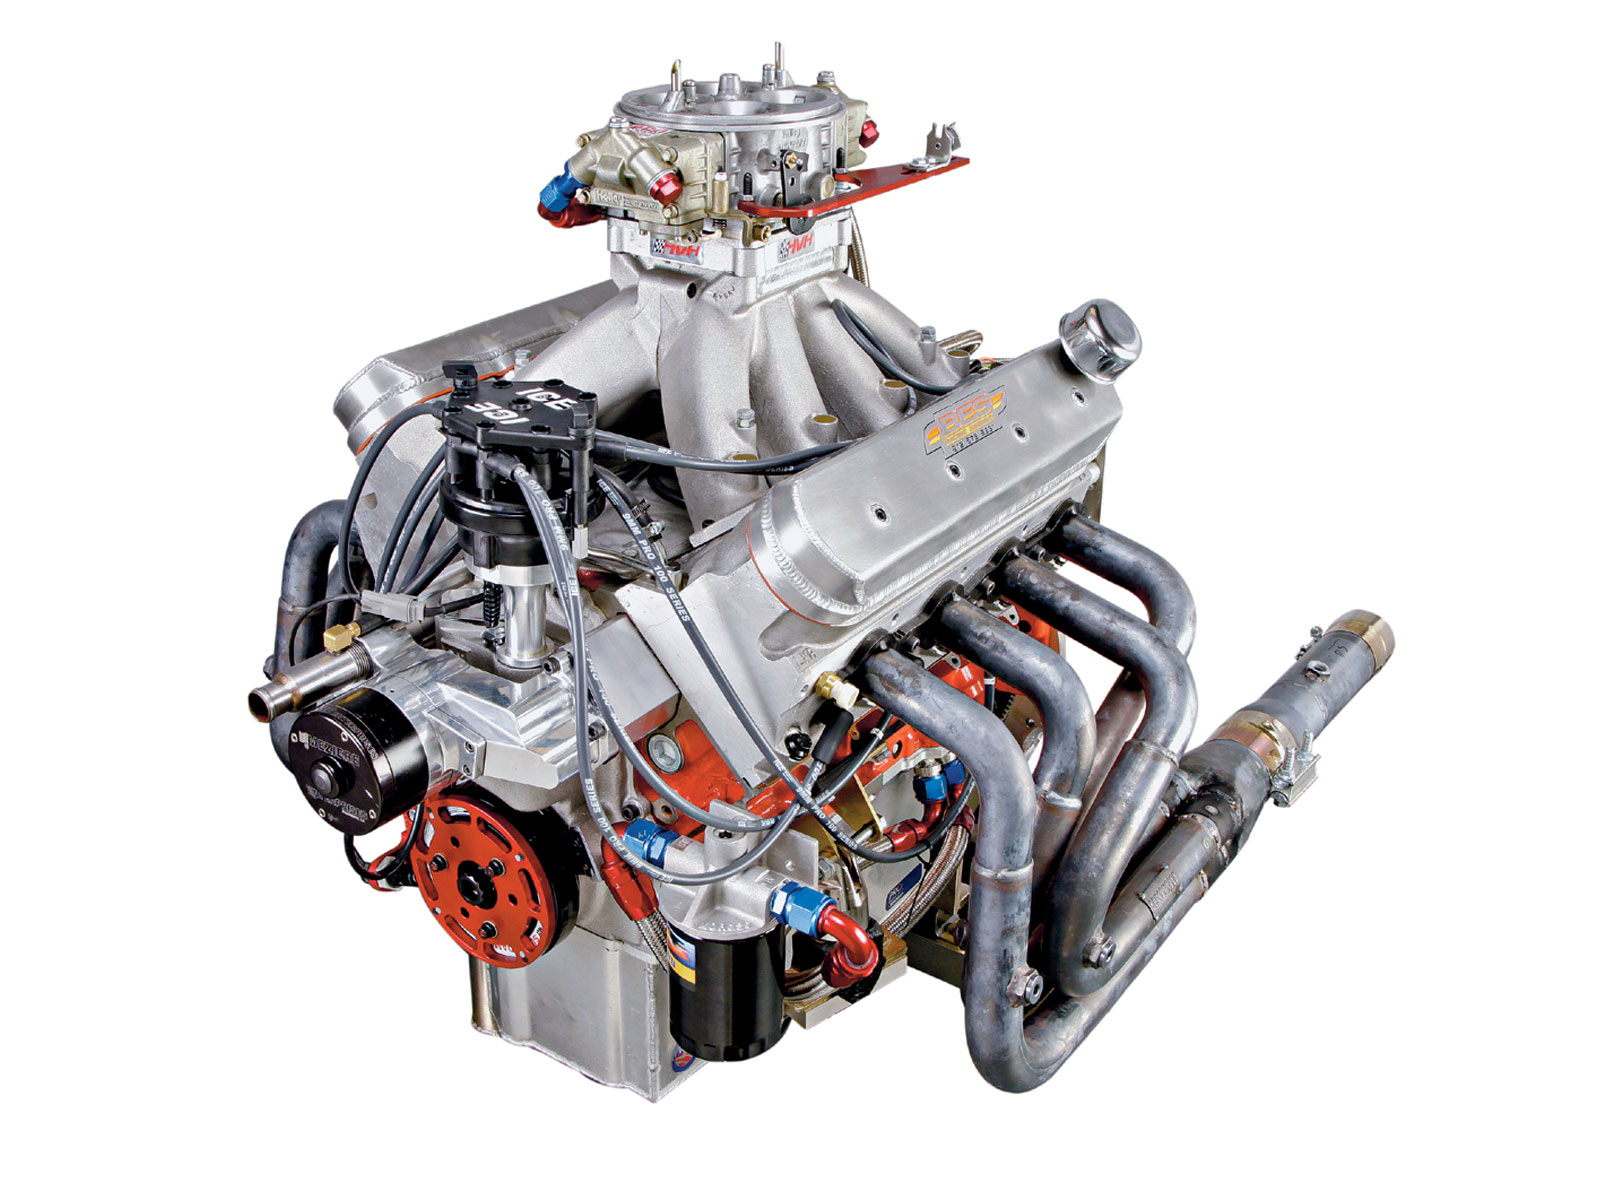 hight resolution of muscle car engine diagram wiring diagram used muscle car engine diagram